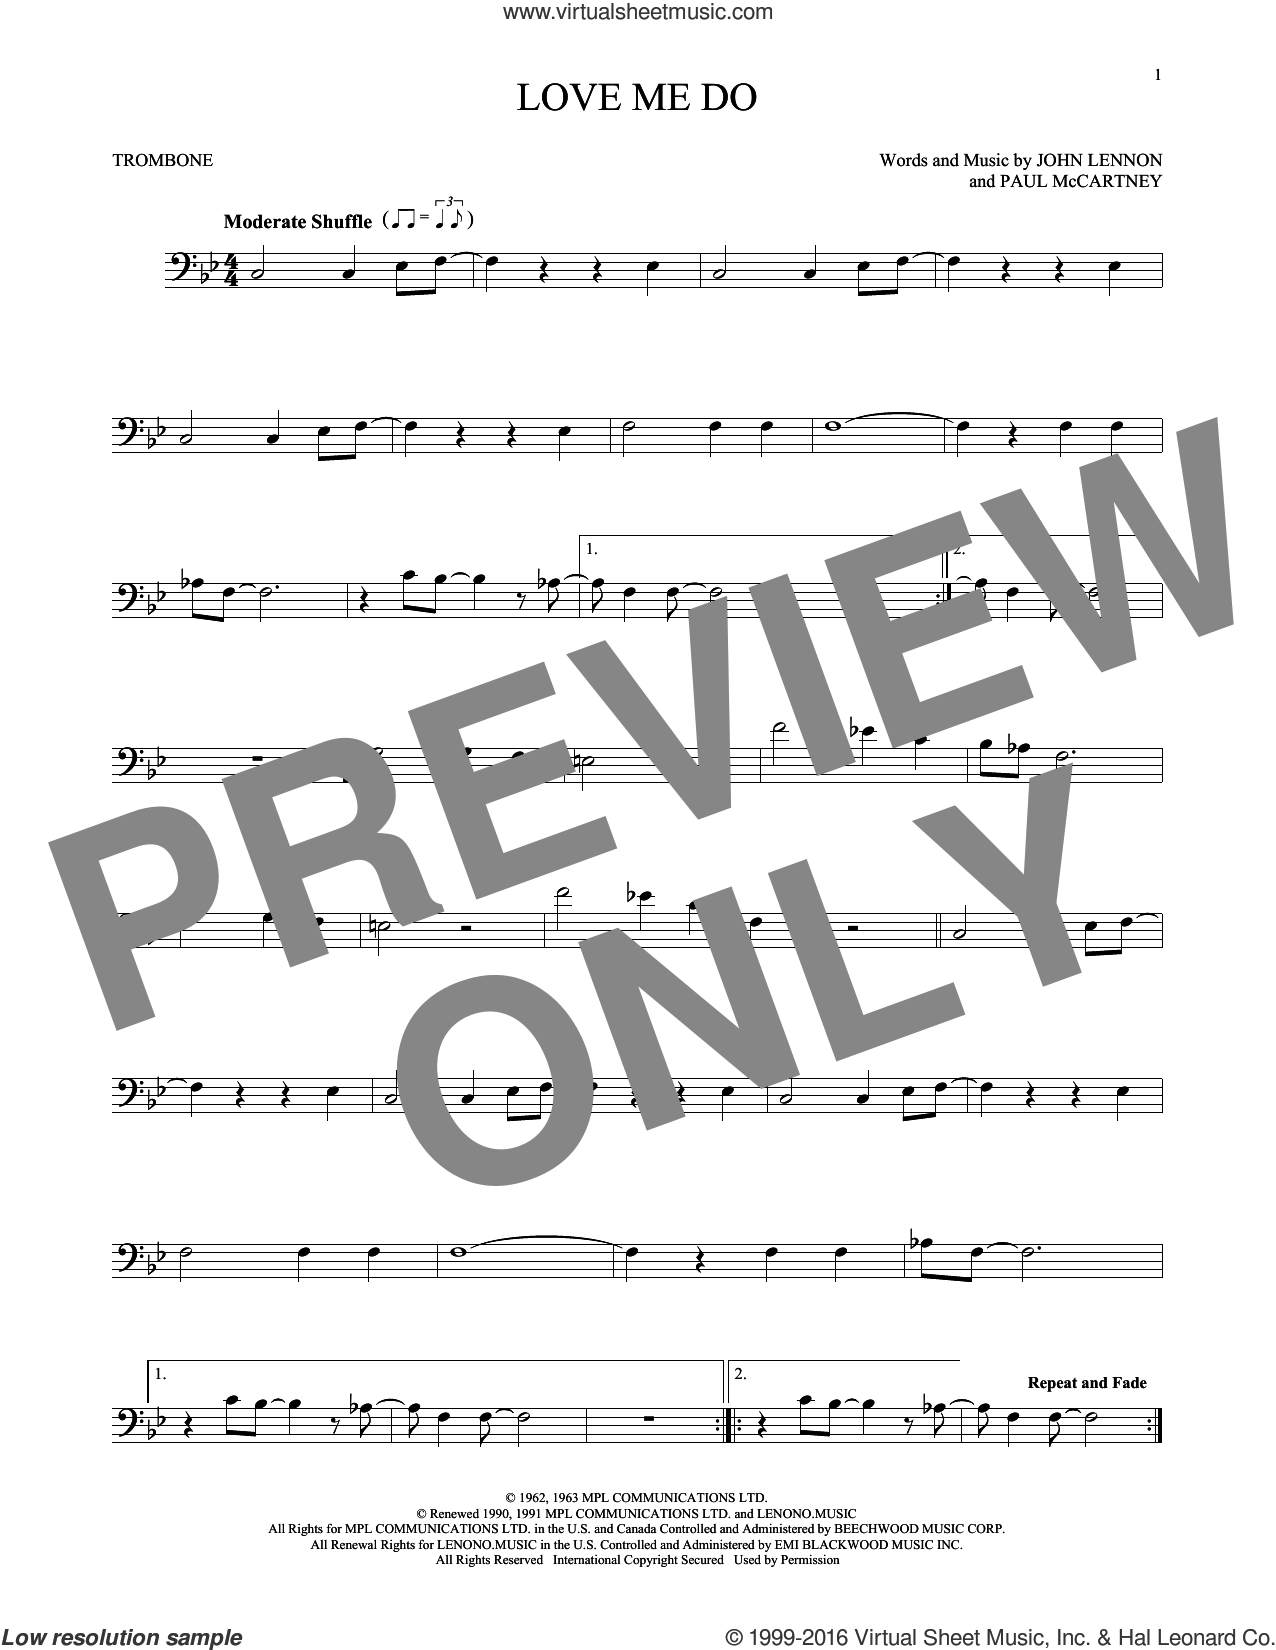 Love Me Do sheet music for trombone solo by Paul McCartney